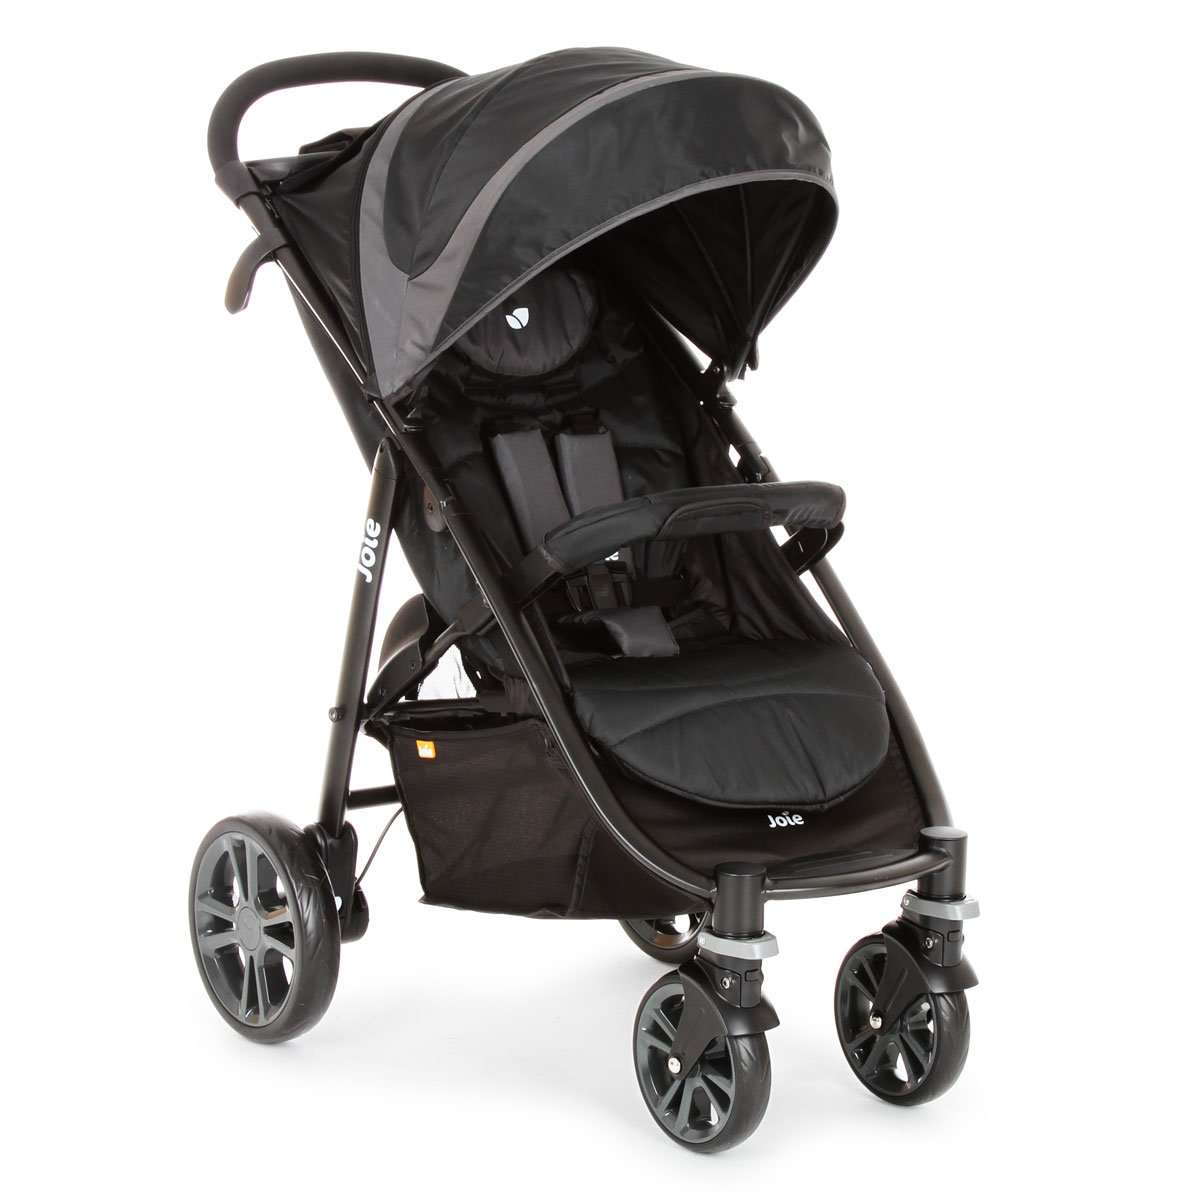 joie litetrax 4 stroller pushchair 2014 design choice of colour ebay. Black Bedroom Furniture Sets. Home Design Ideas